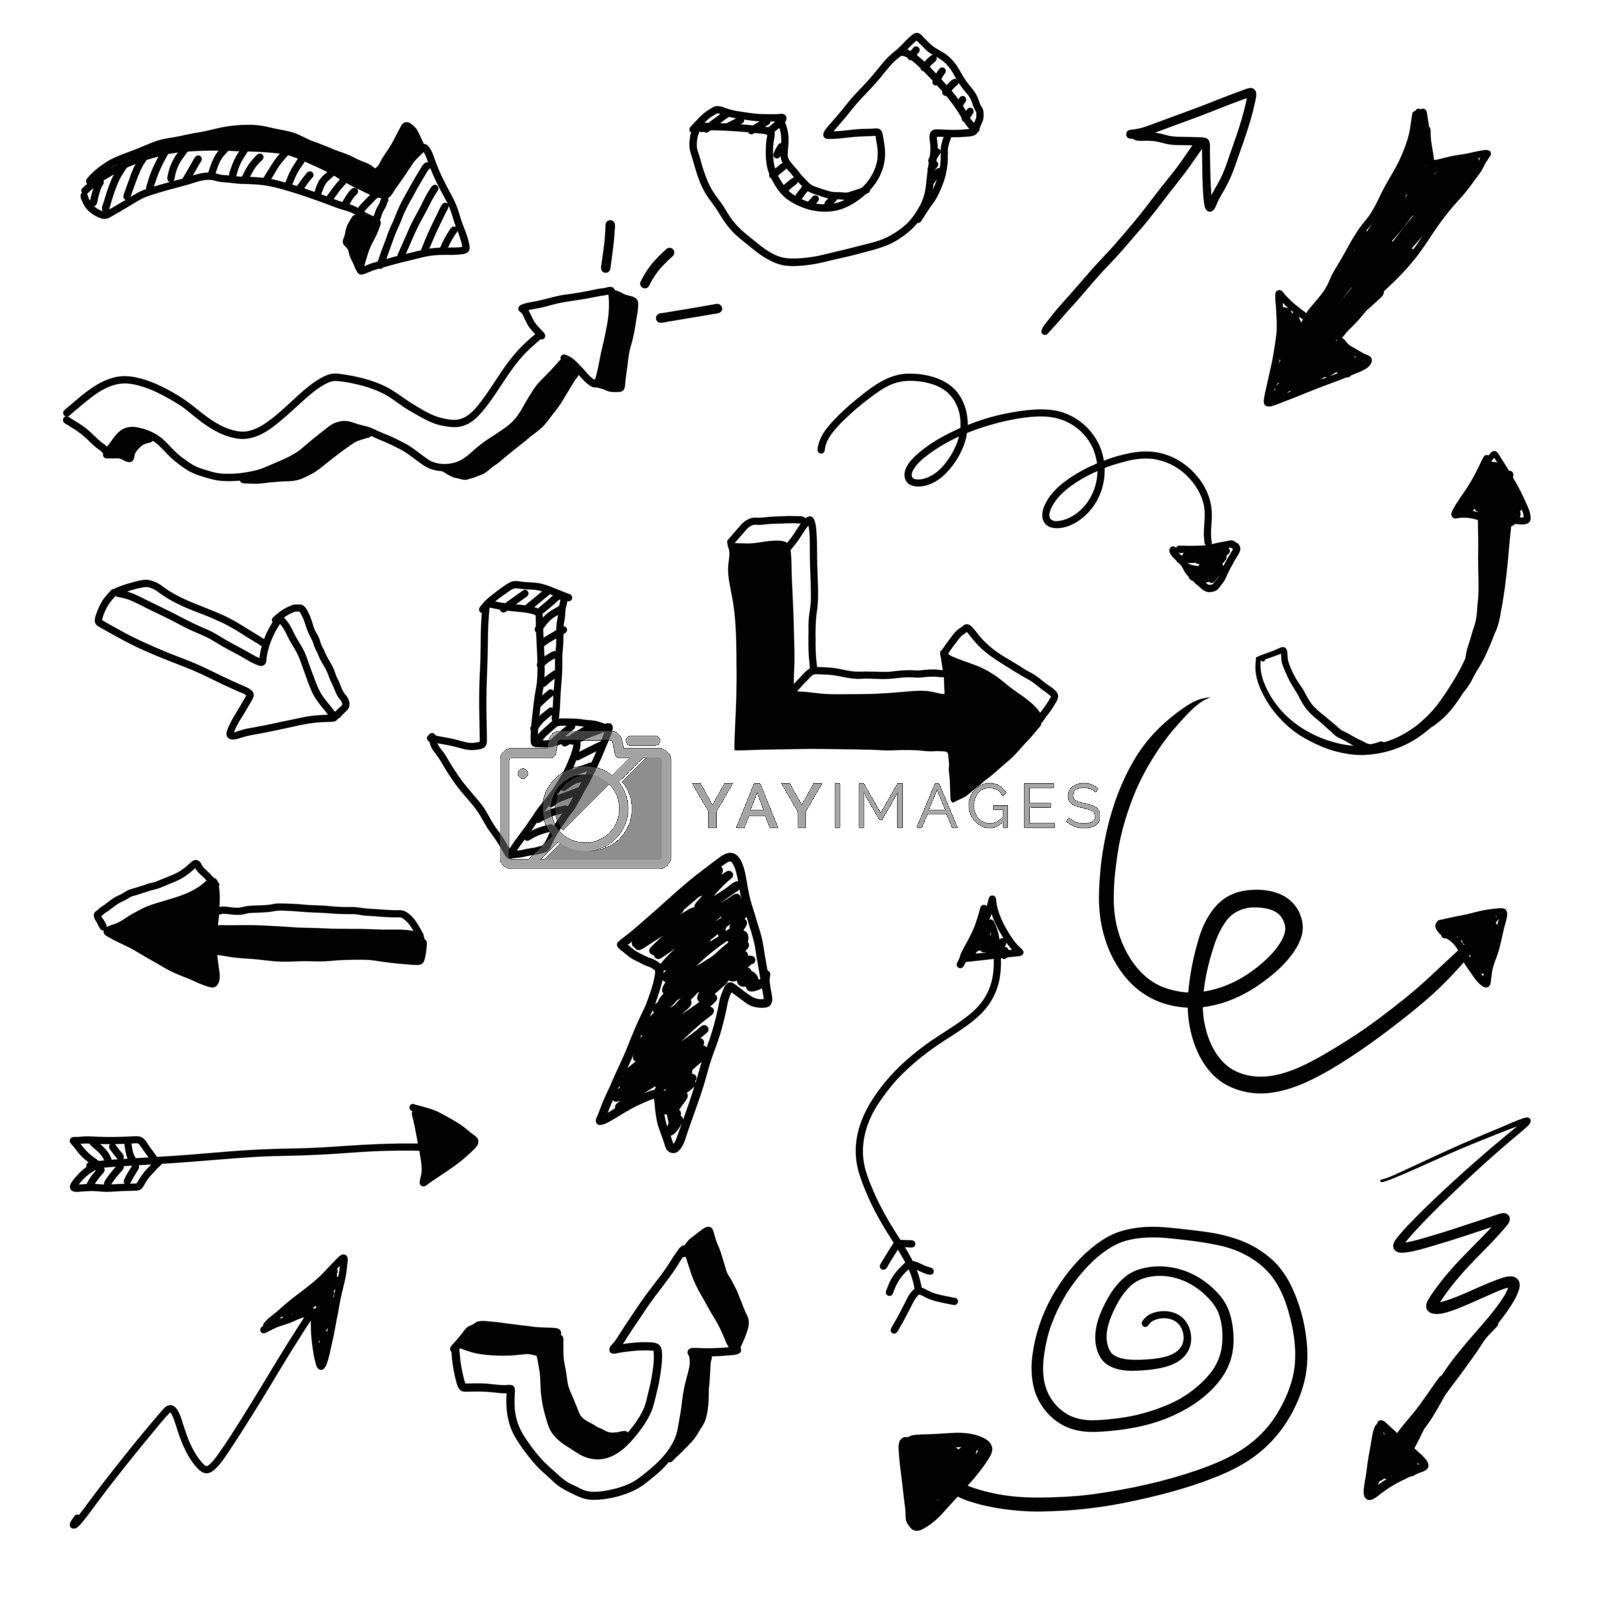 Royalty free image of Vector Arrow Doodle Set by keeweeboy